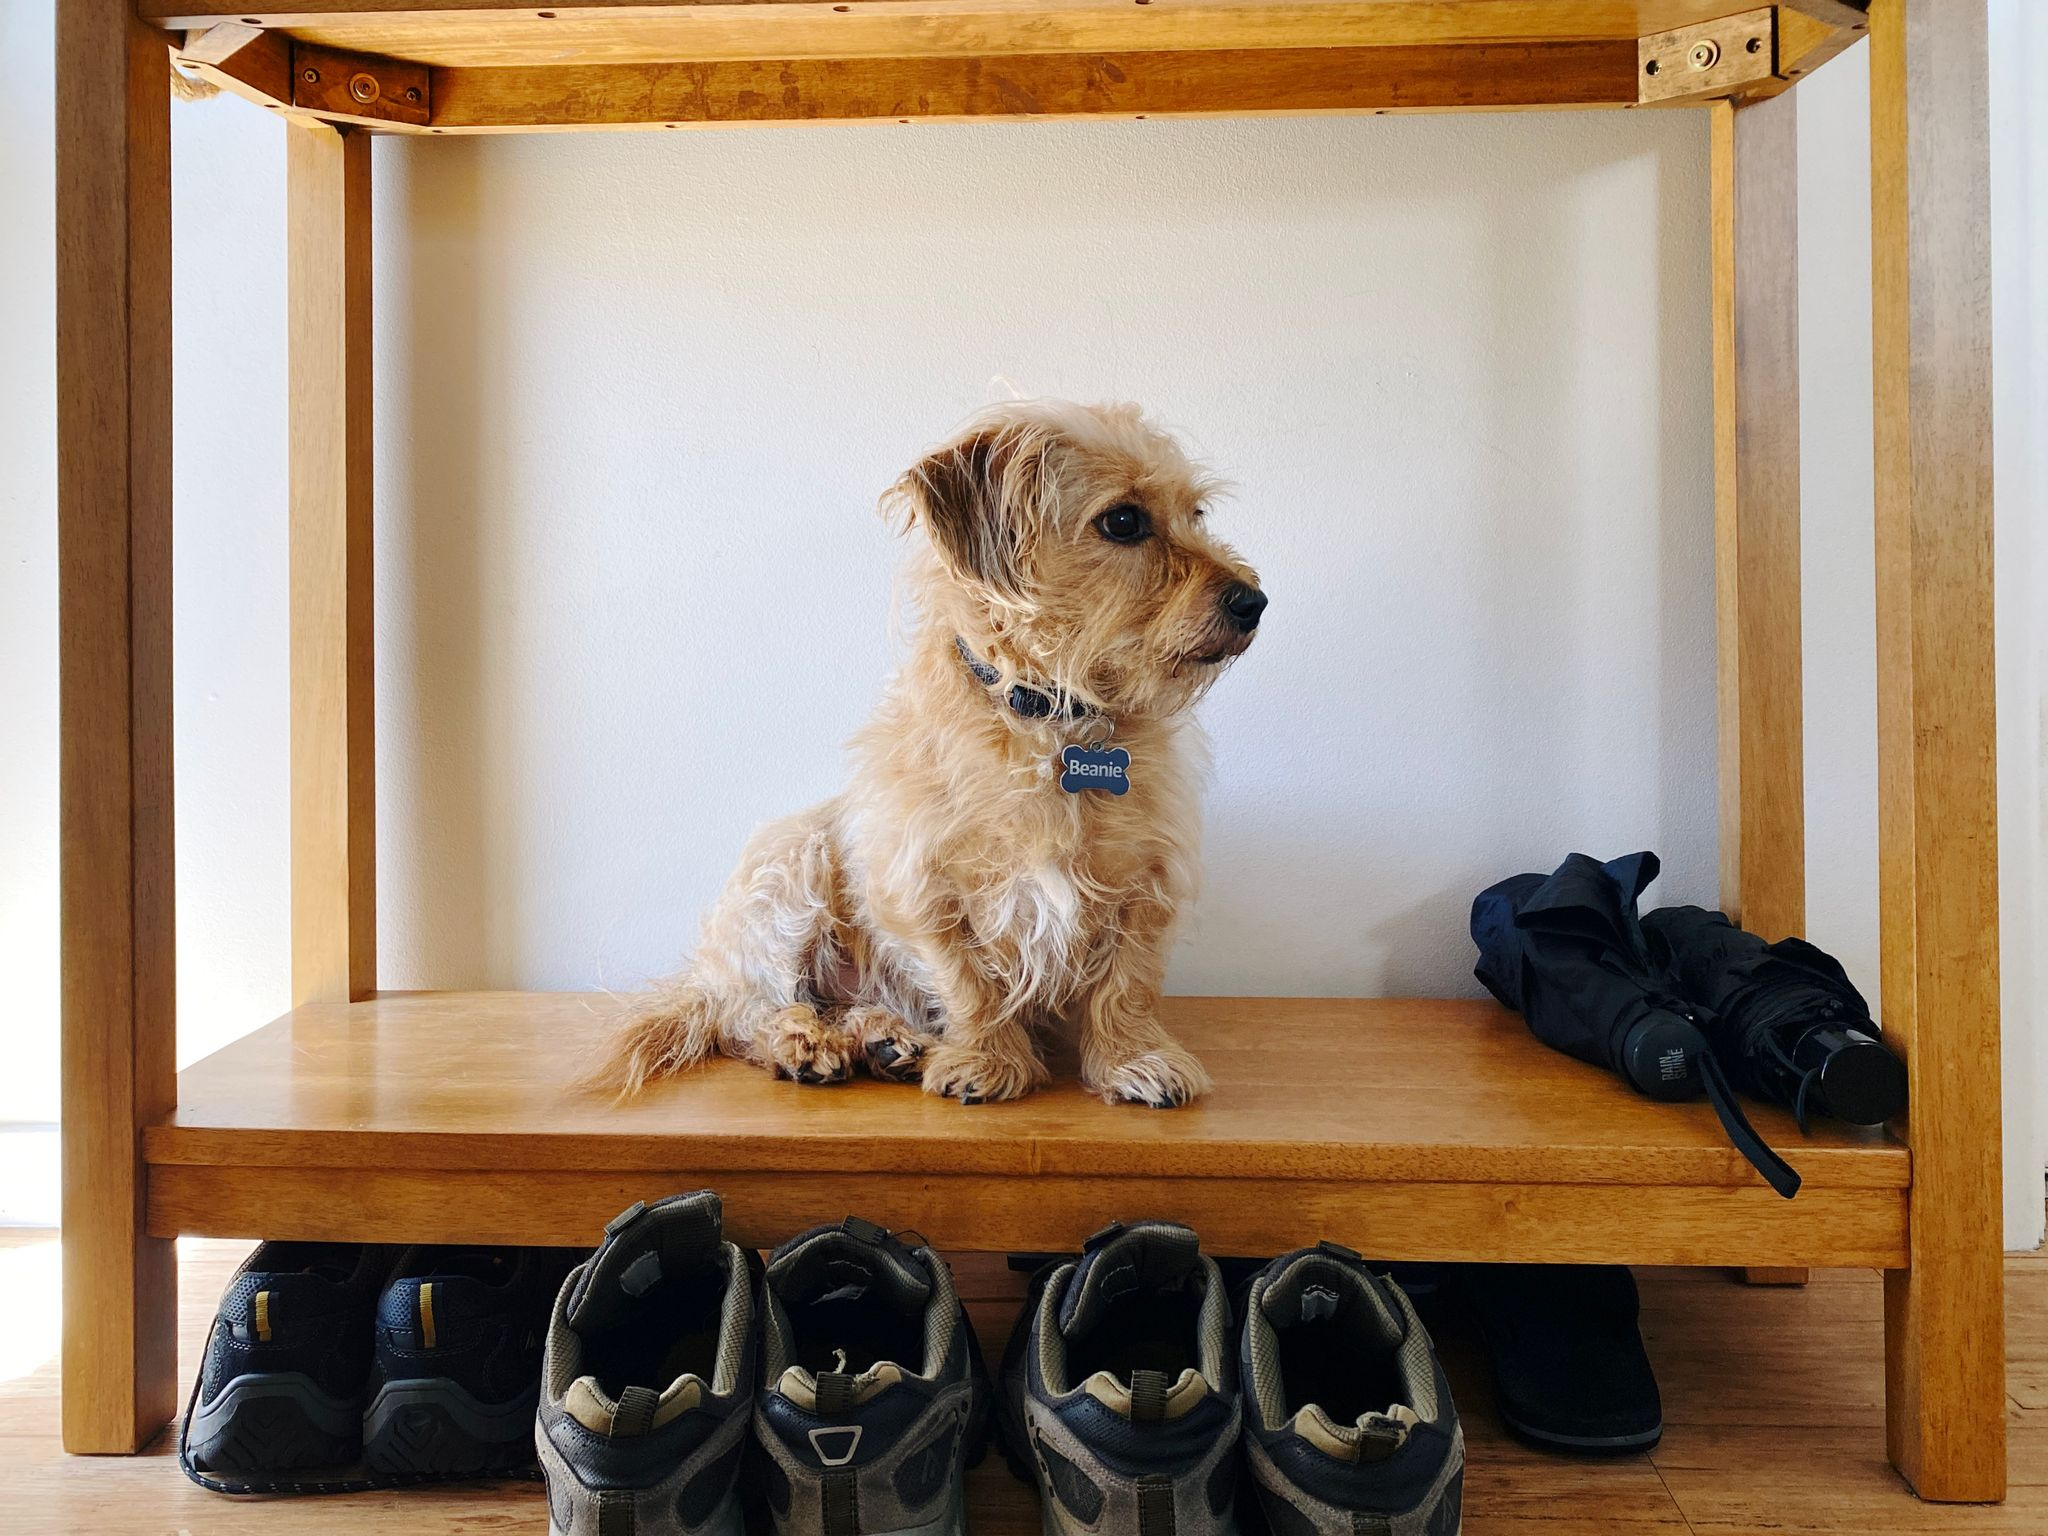 A photo of a small scruffy blonde dog sitting on the low bottom shelf of a narrow wooden side that's against a wall.